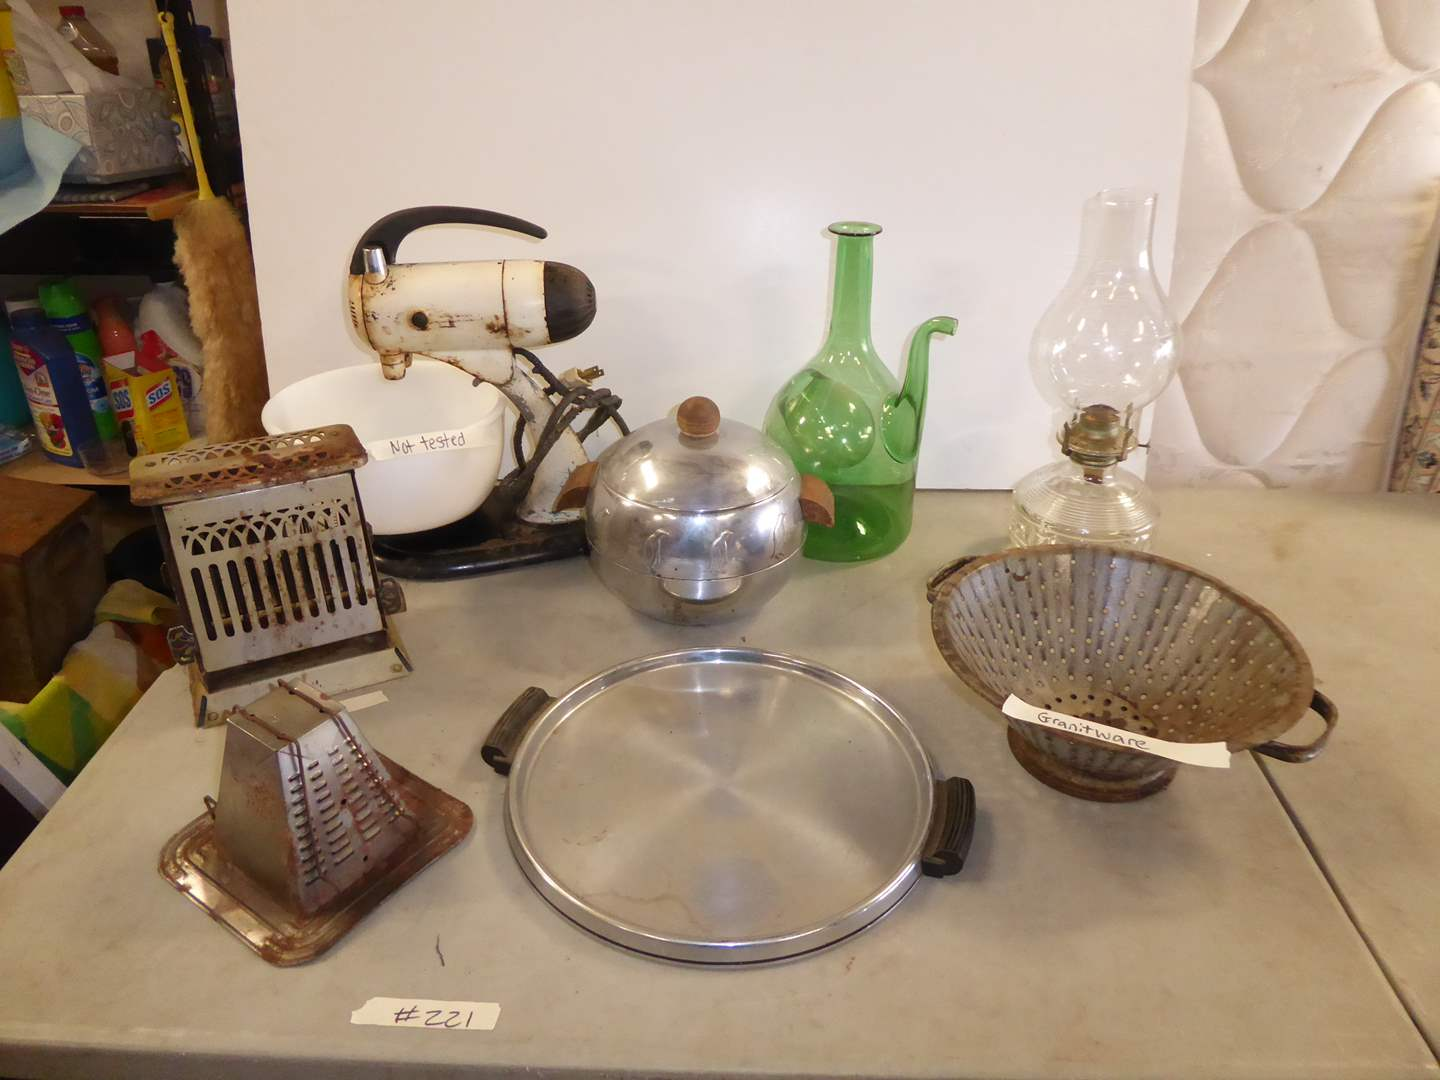 Lot # 221 - Vintage Toasters, Wine Decanter & Mixer (main image)